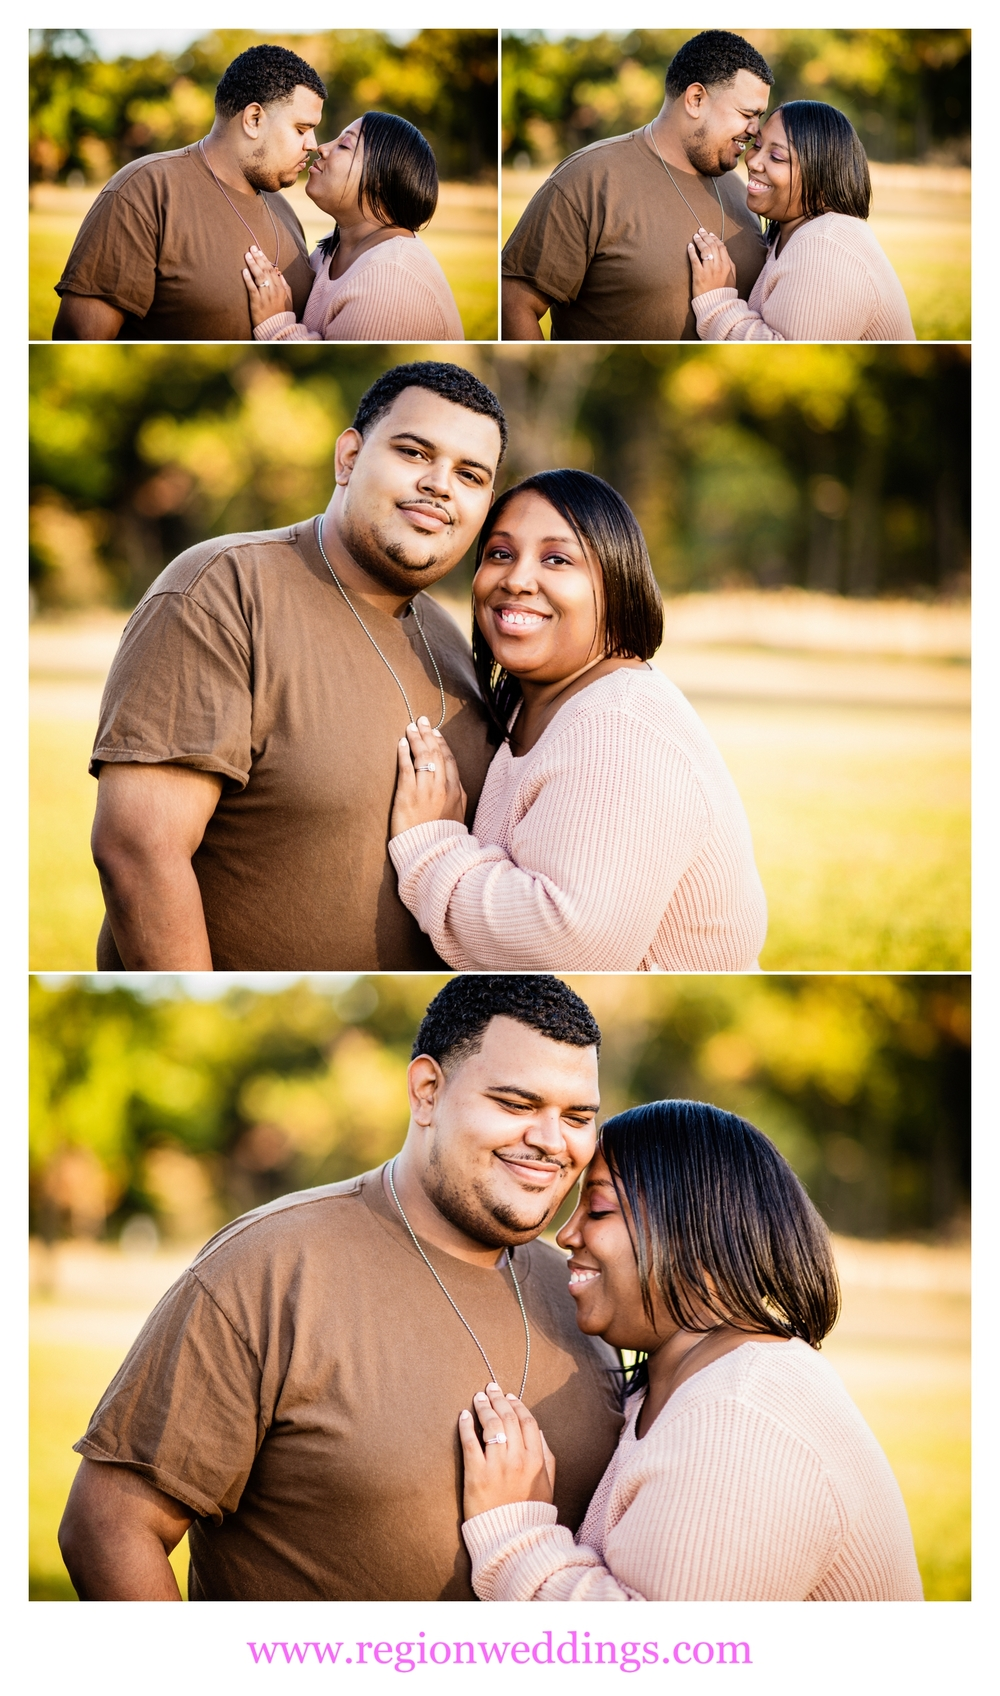 A couple in love share a few laughs at their Anniversary Photo Session.